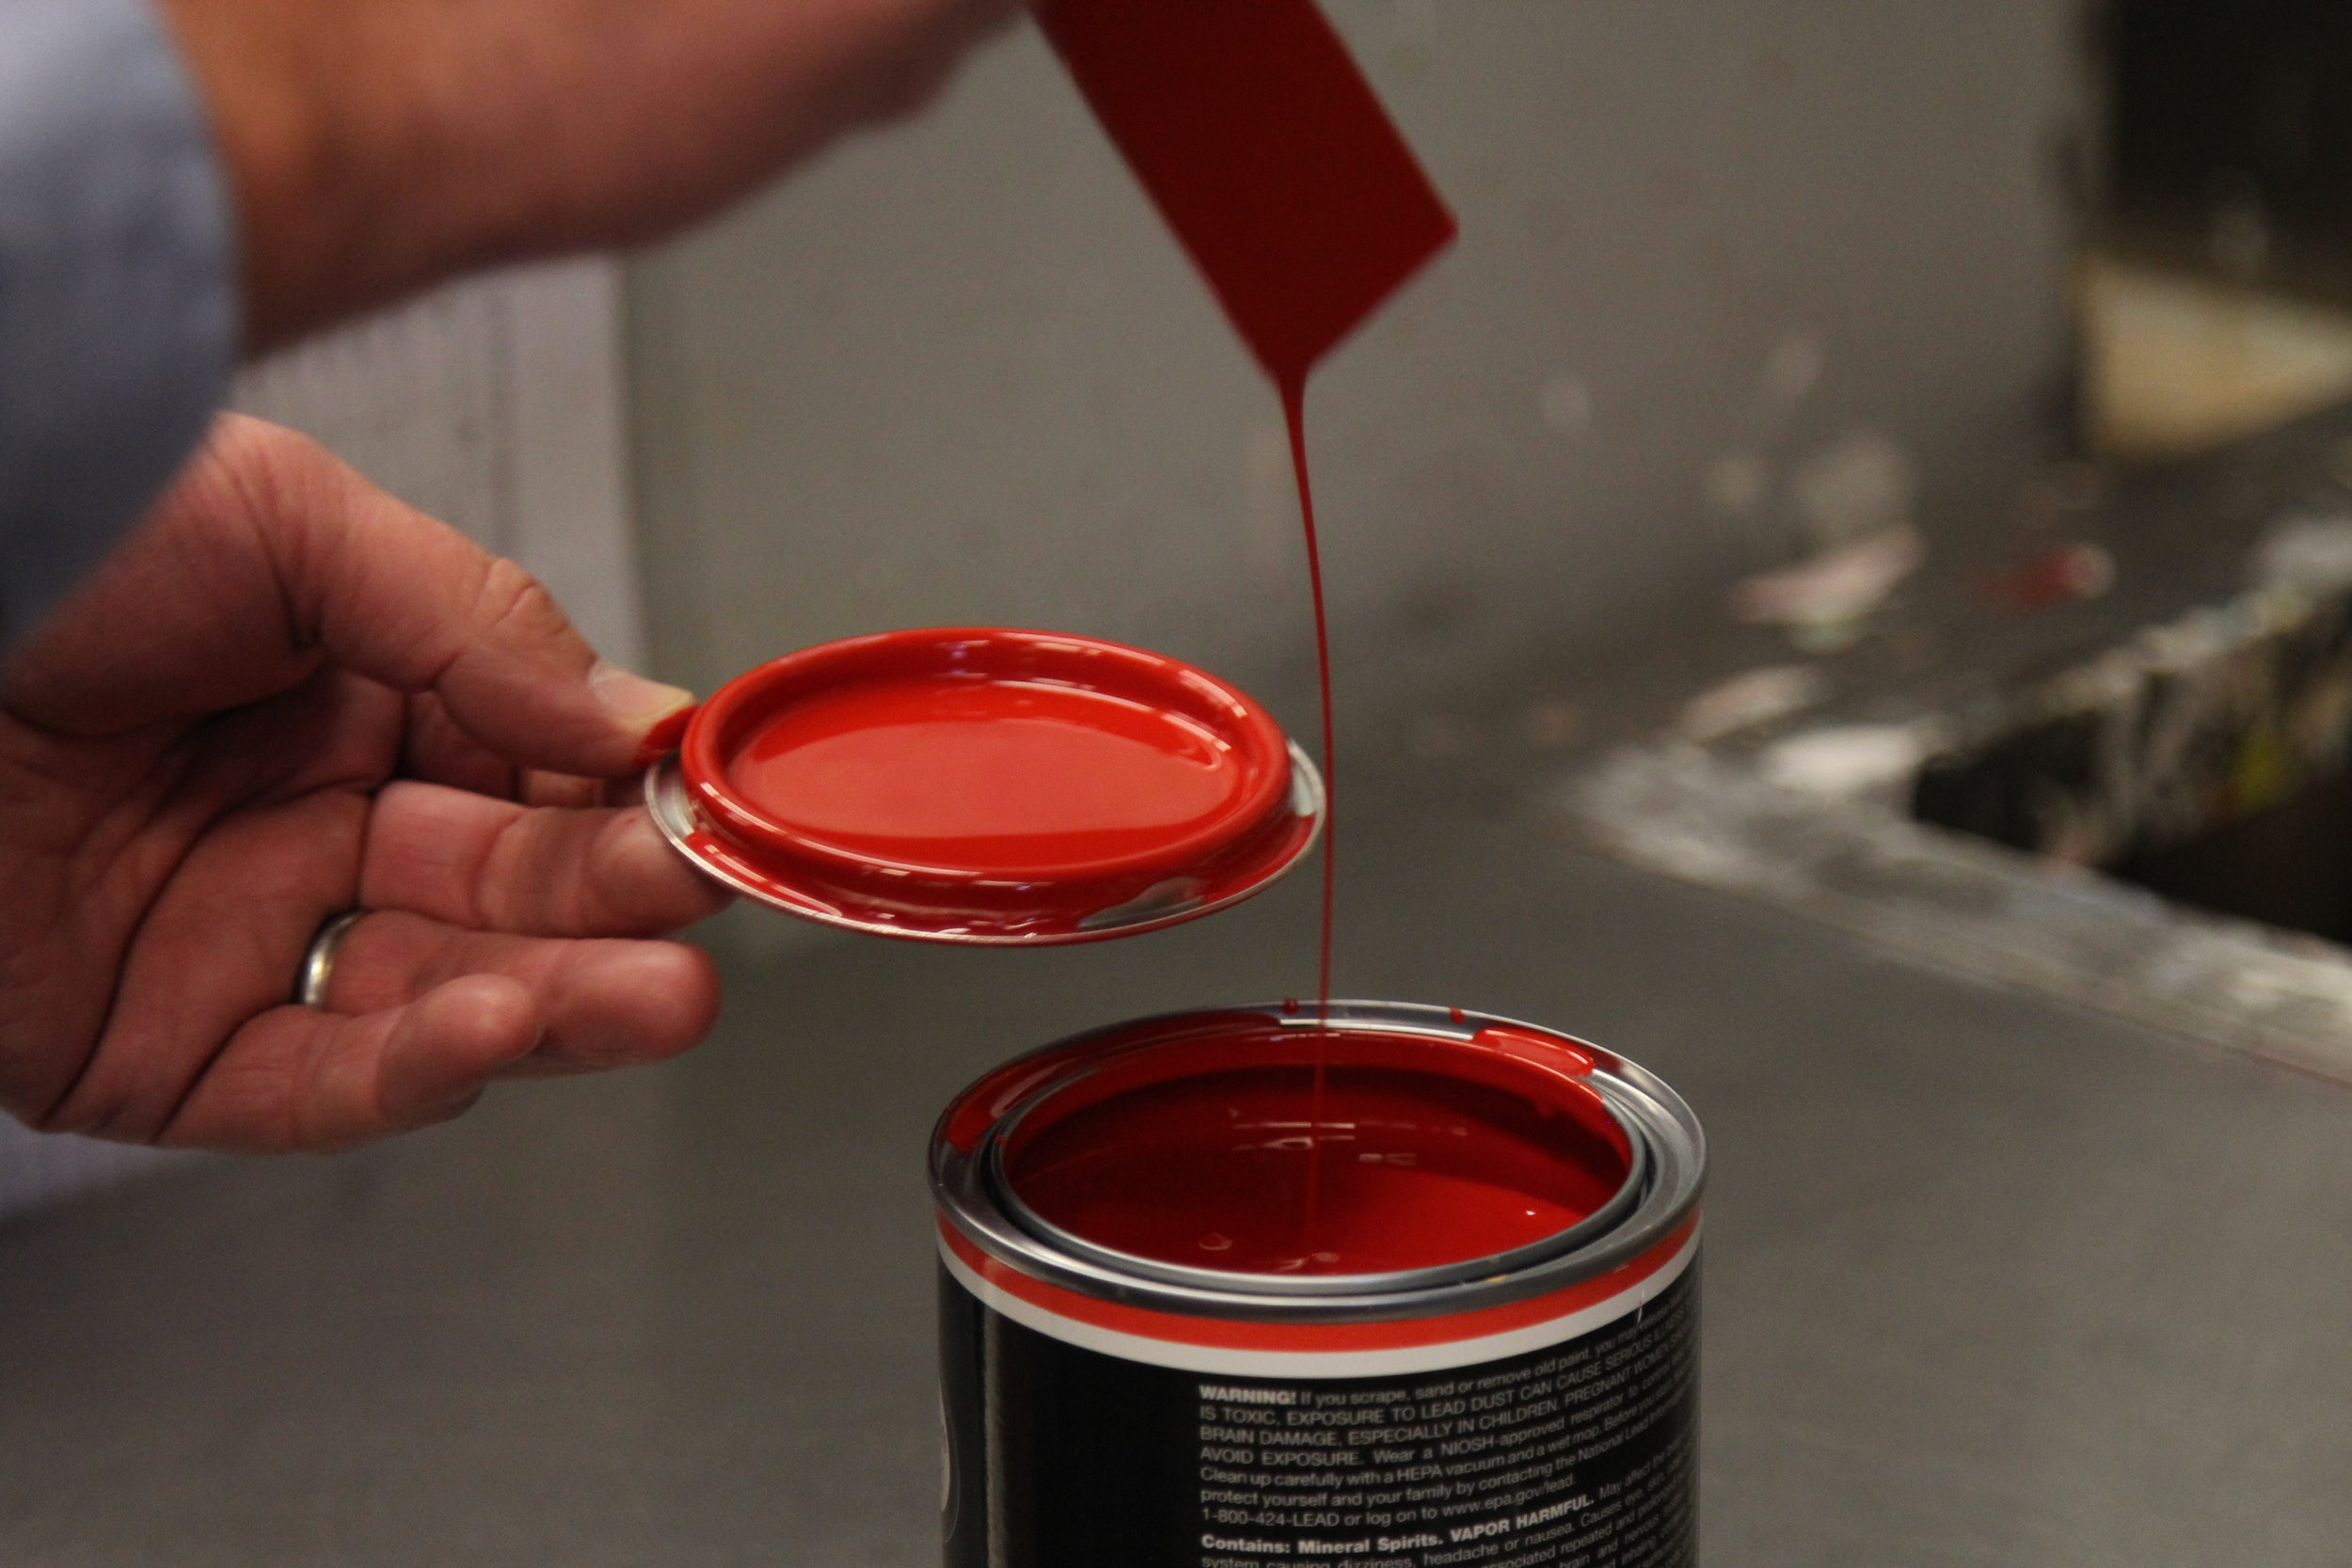 Fine Paints of Europe color red